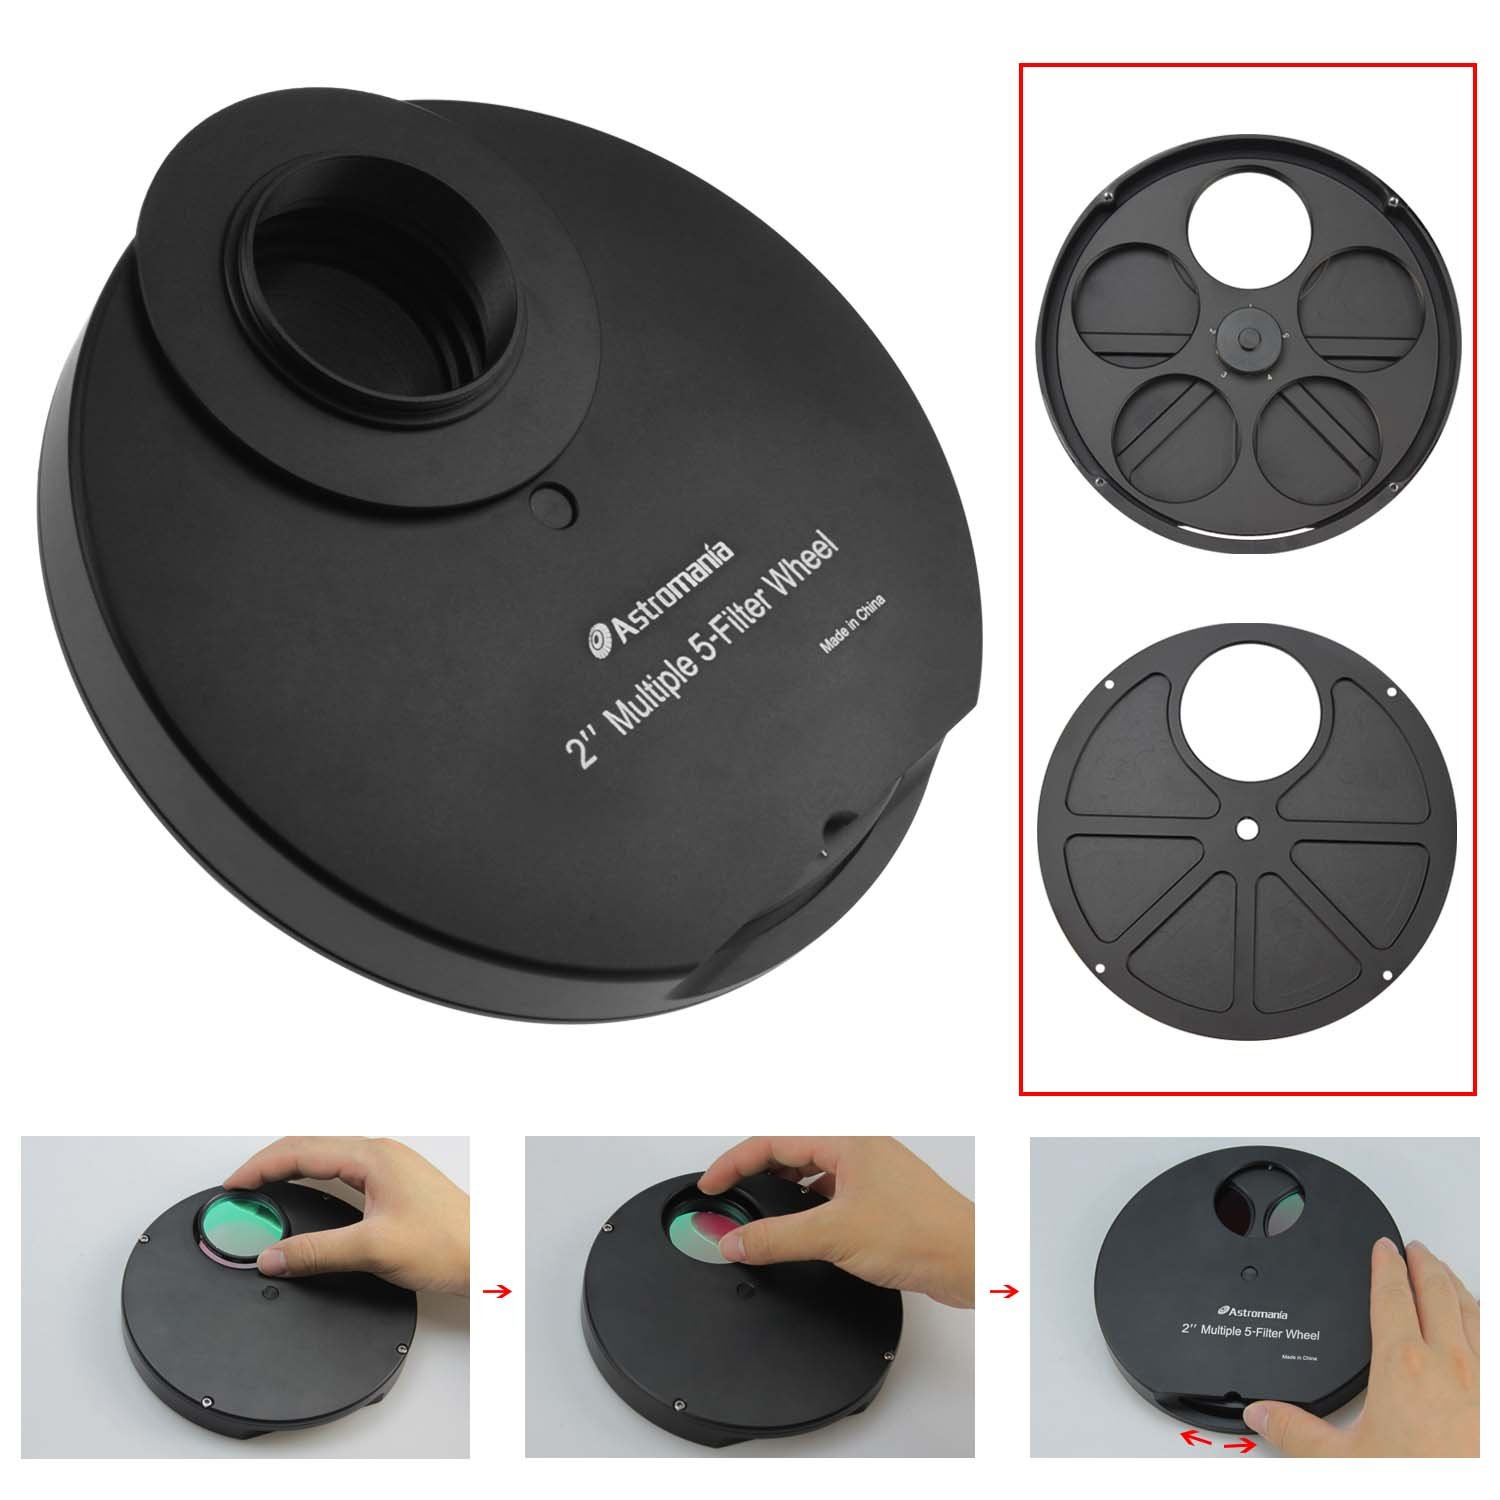 Astromania 2'' Superior Quality Multiple 5-Position Filter Wheel For Telescope - allowing you to image without any reflections or stray light by Astromania (Image #5)